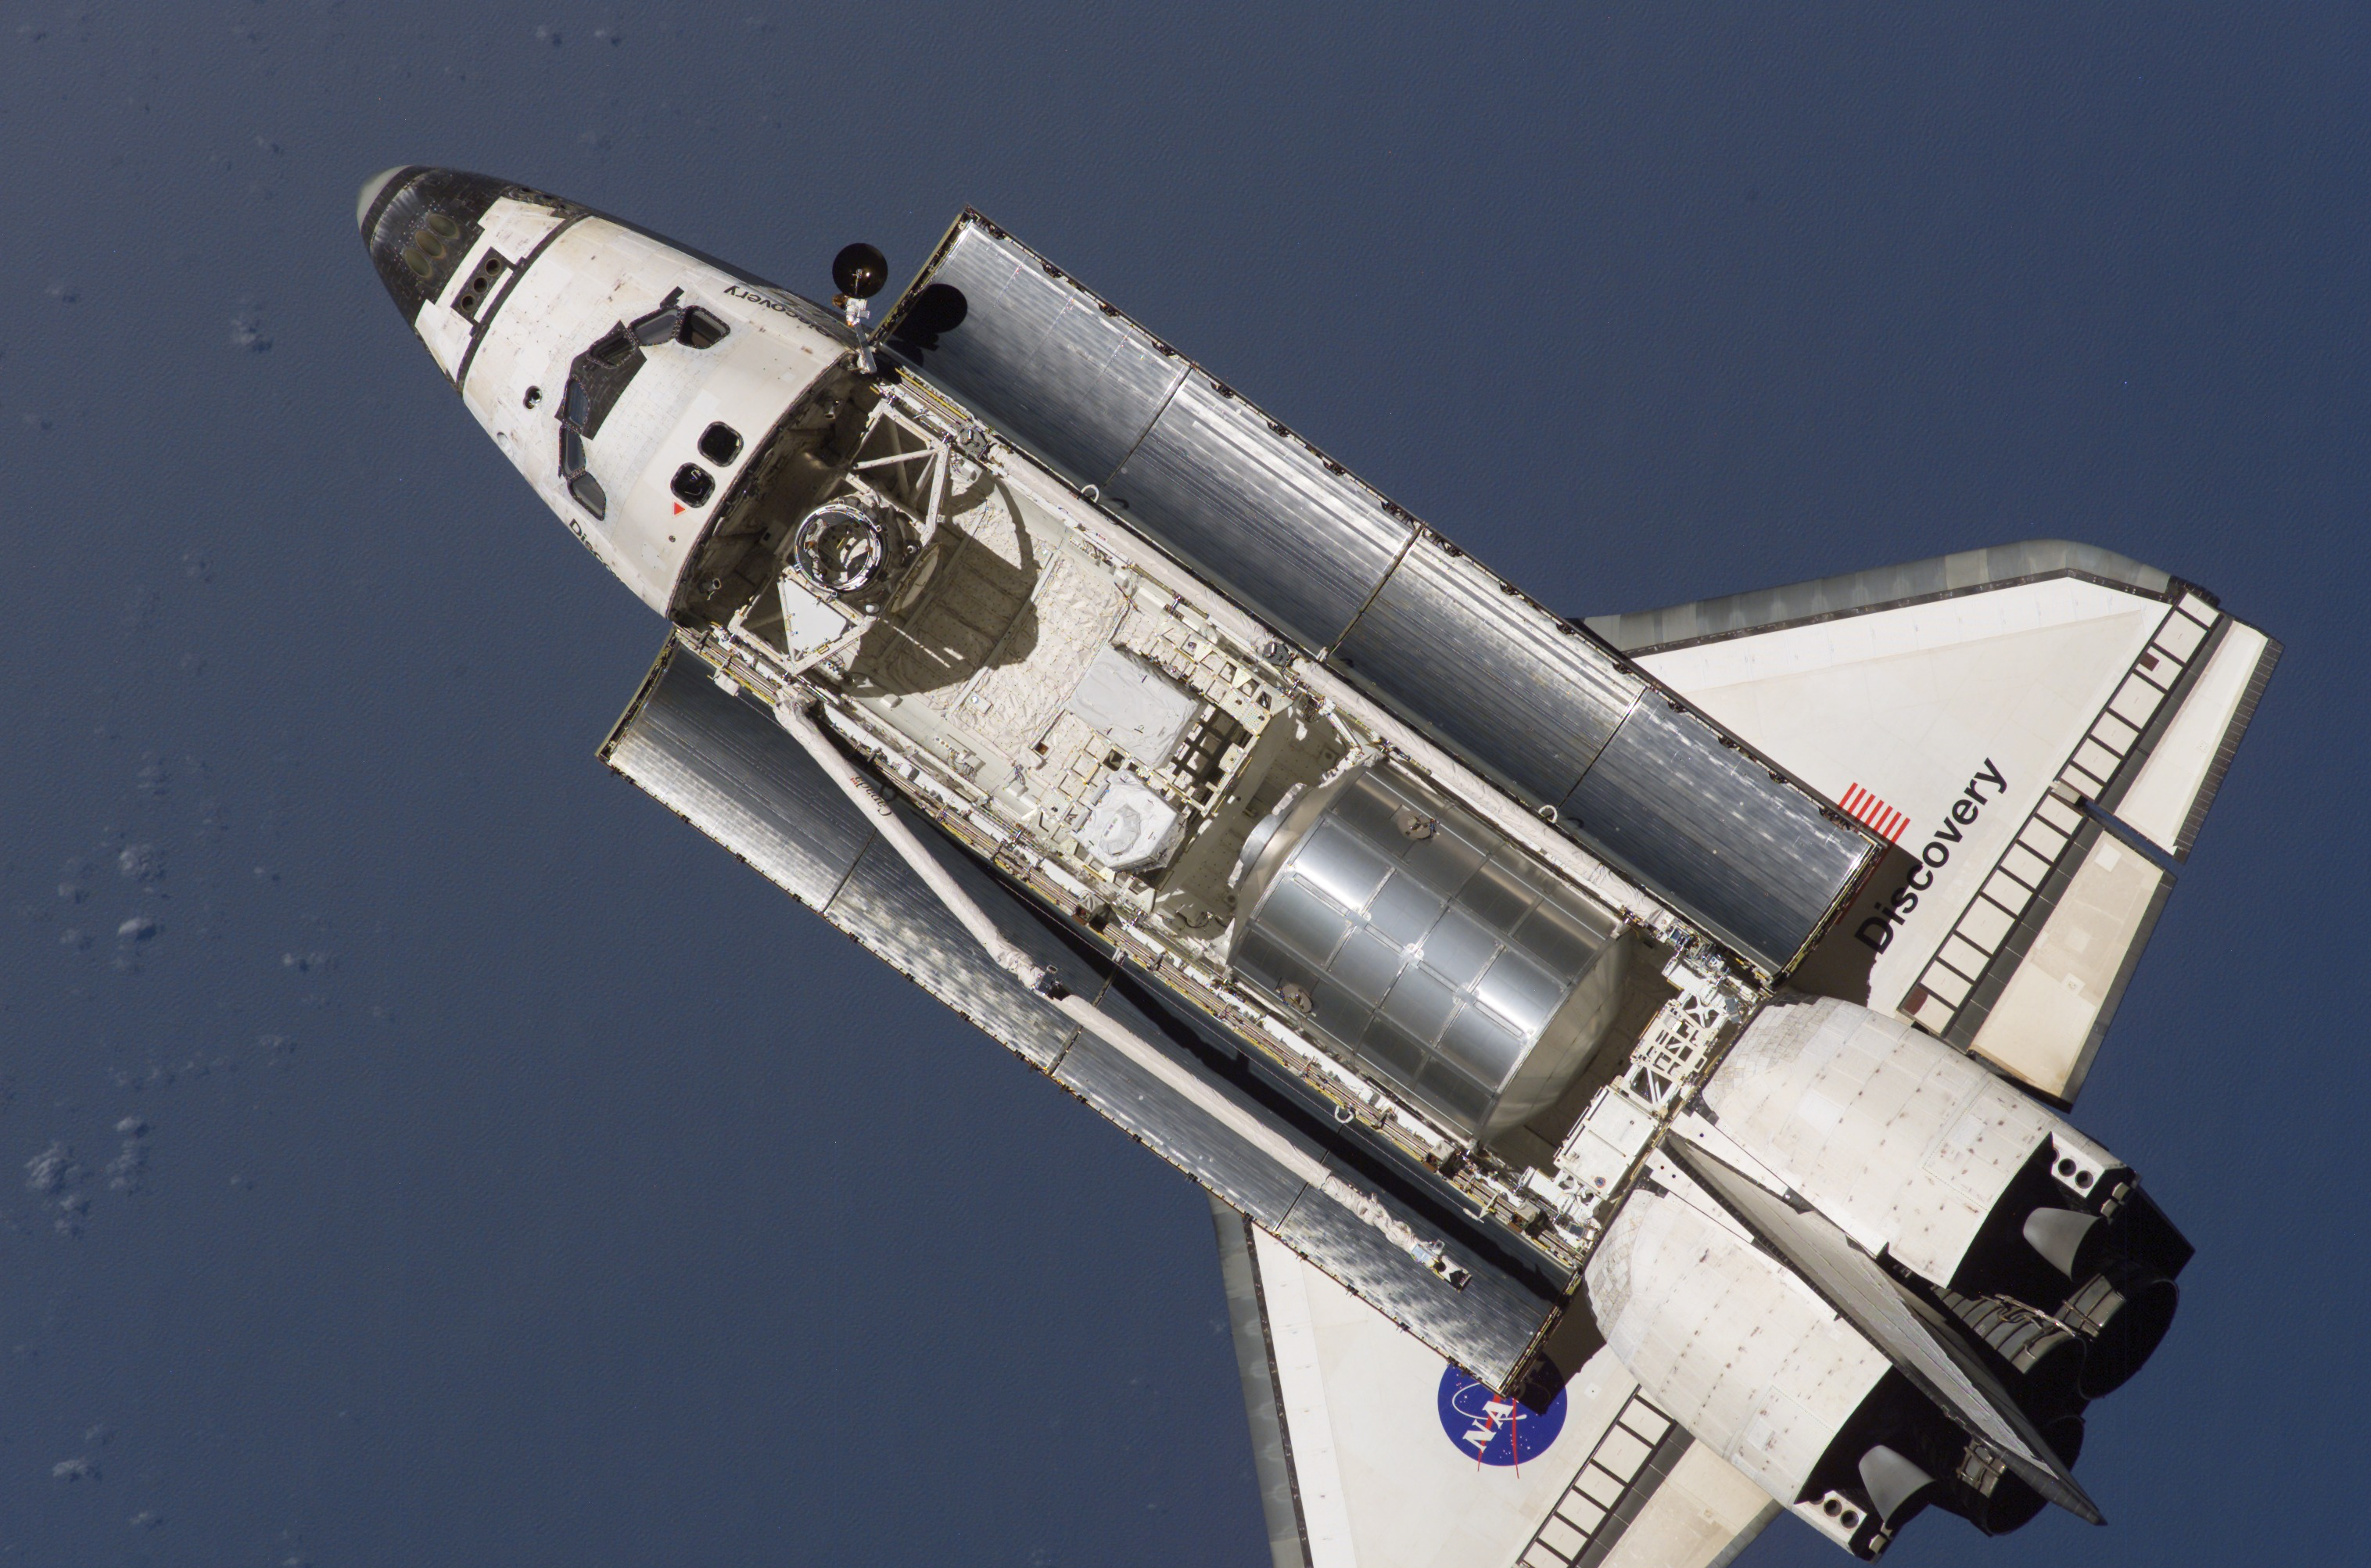 space shuttle challenger payload - photo #13